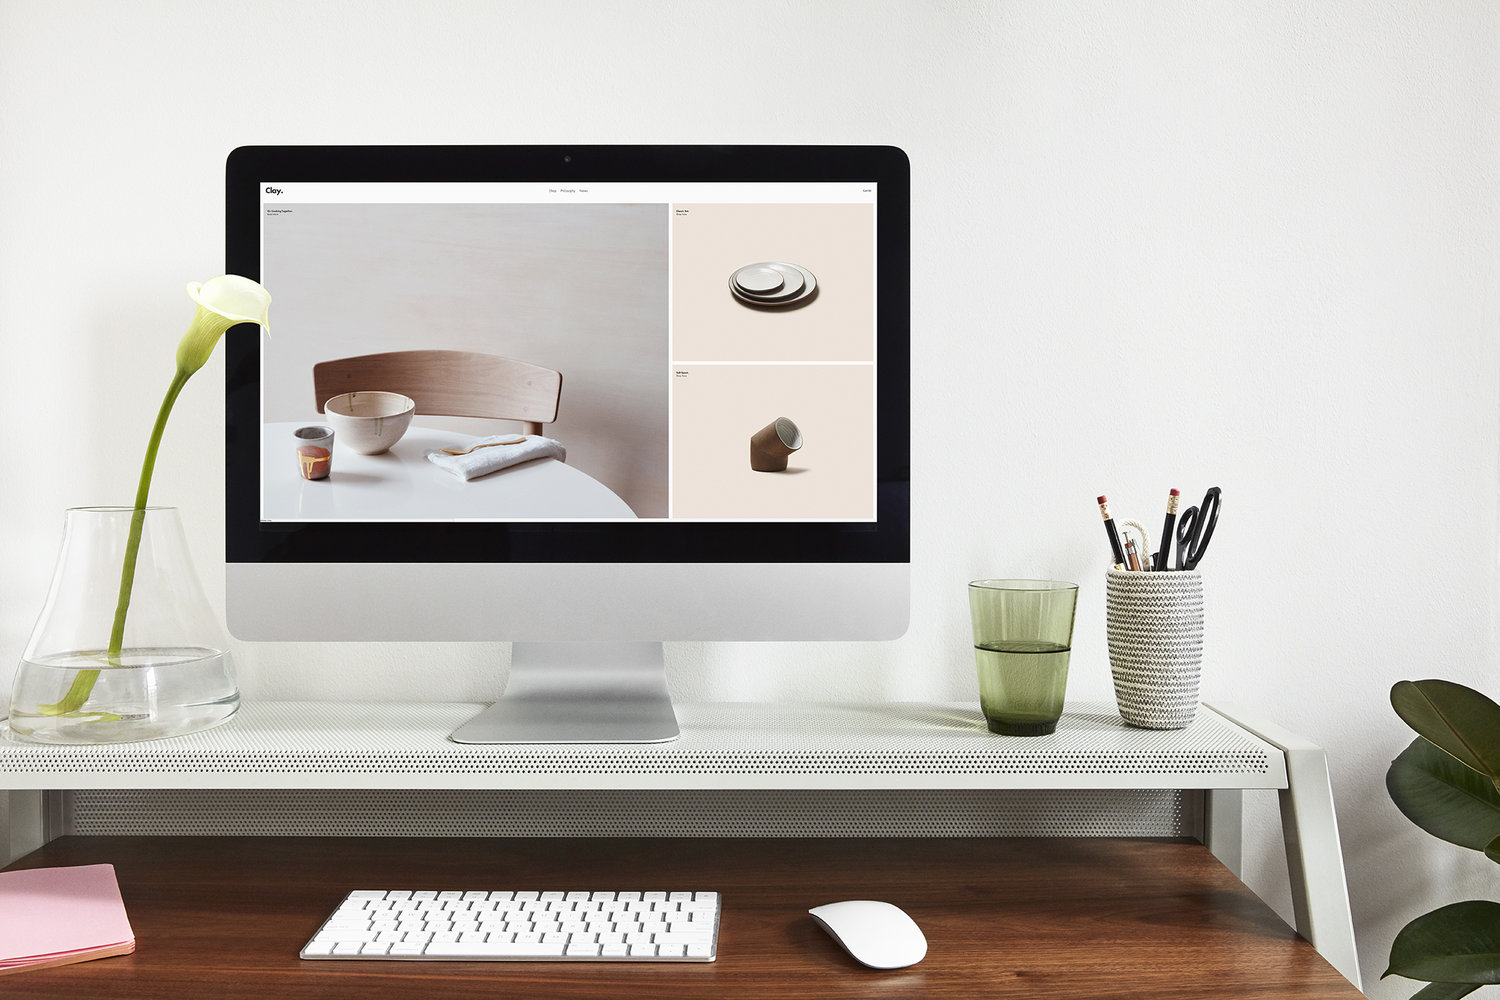 Wild Willow Design builds stunning Squarespace websites and creates thoughtful marketing strategies for small businesses